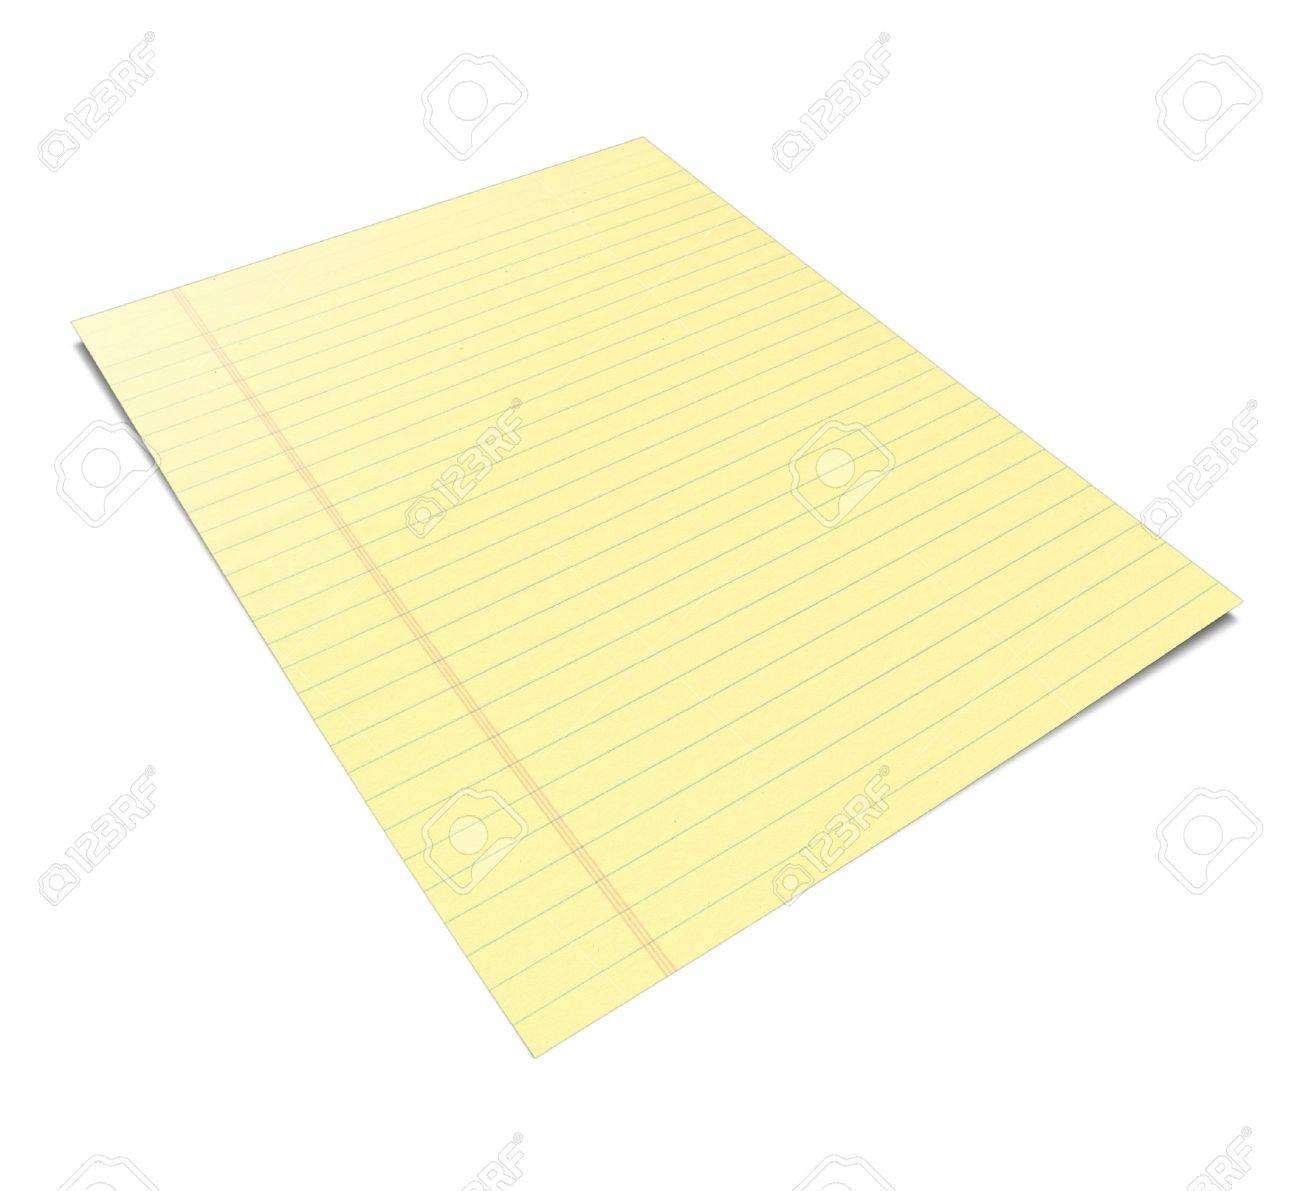 3d Illustration of a notebook with yellow leaves Stock Photo - 8187015